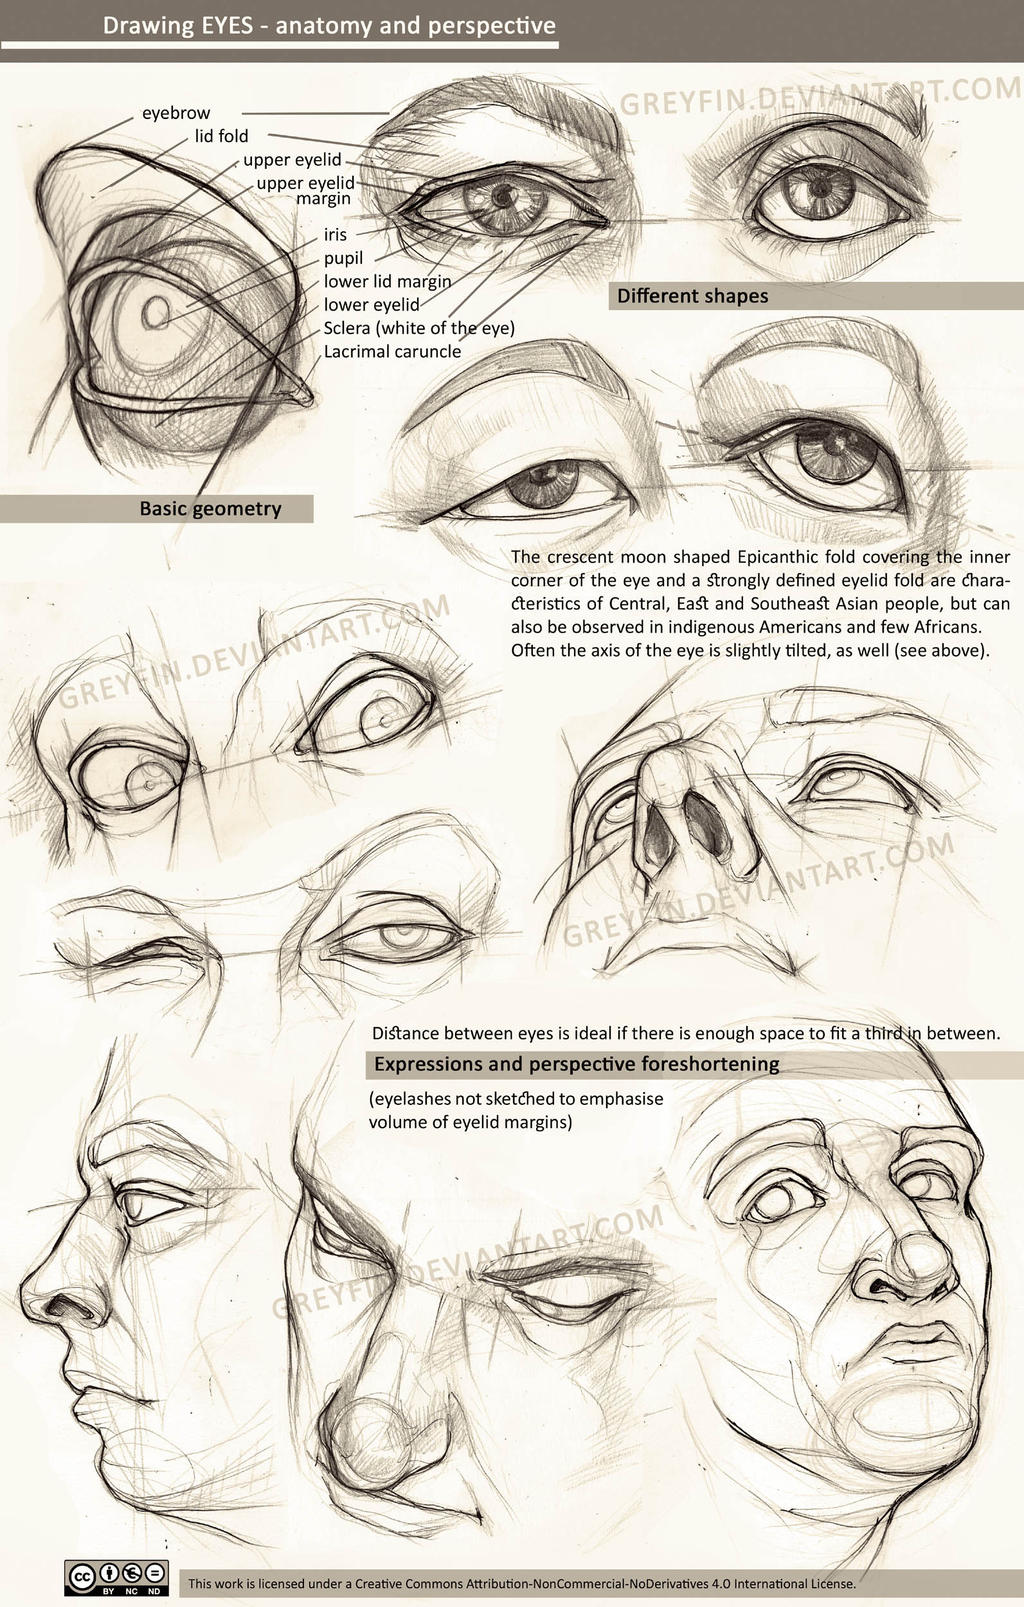 Drawing eyes - anatomy and perspective by greyfin on DeviantArt